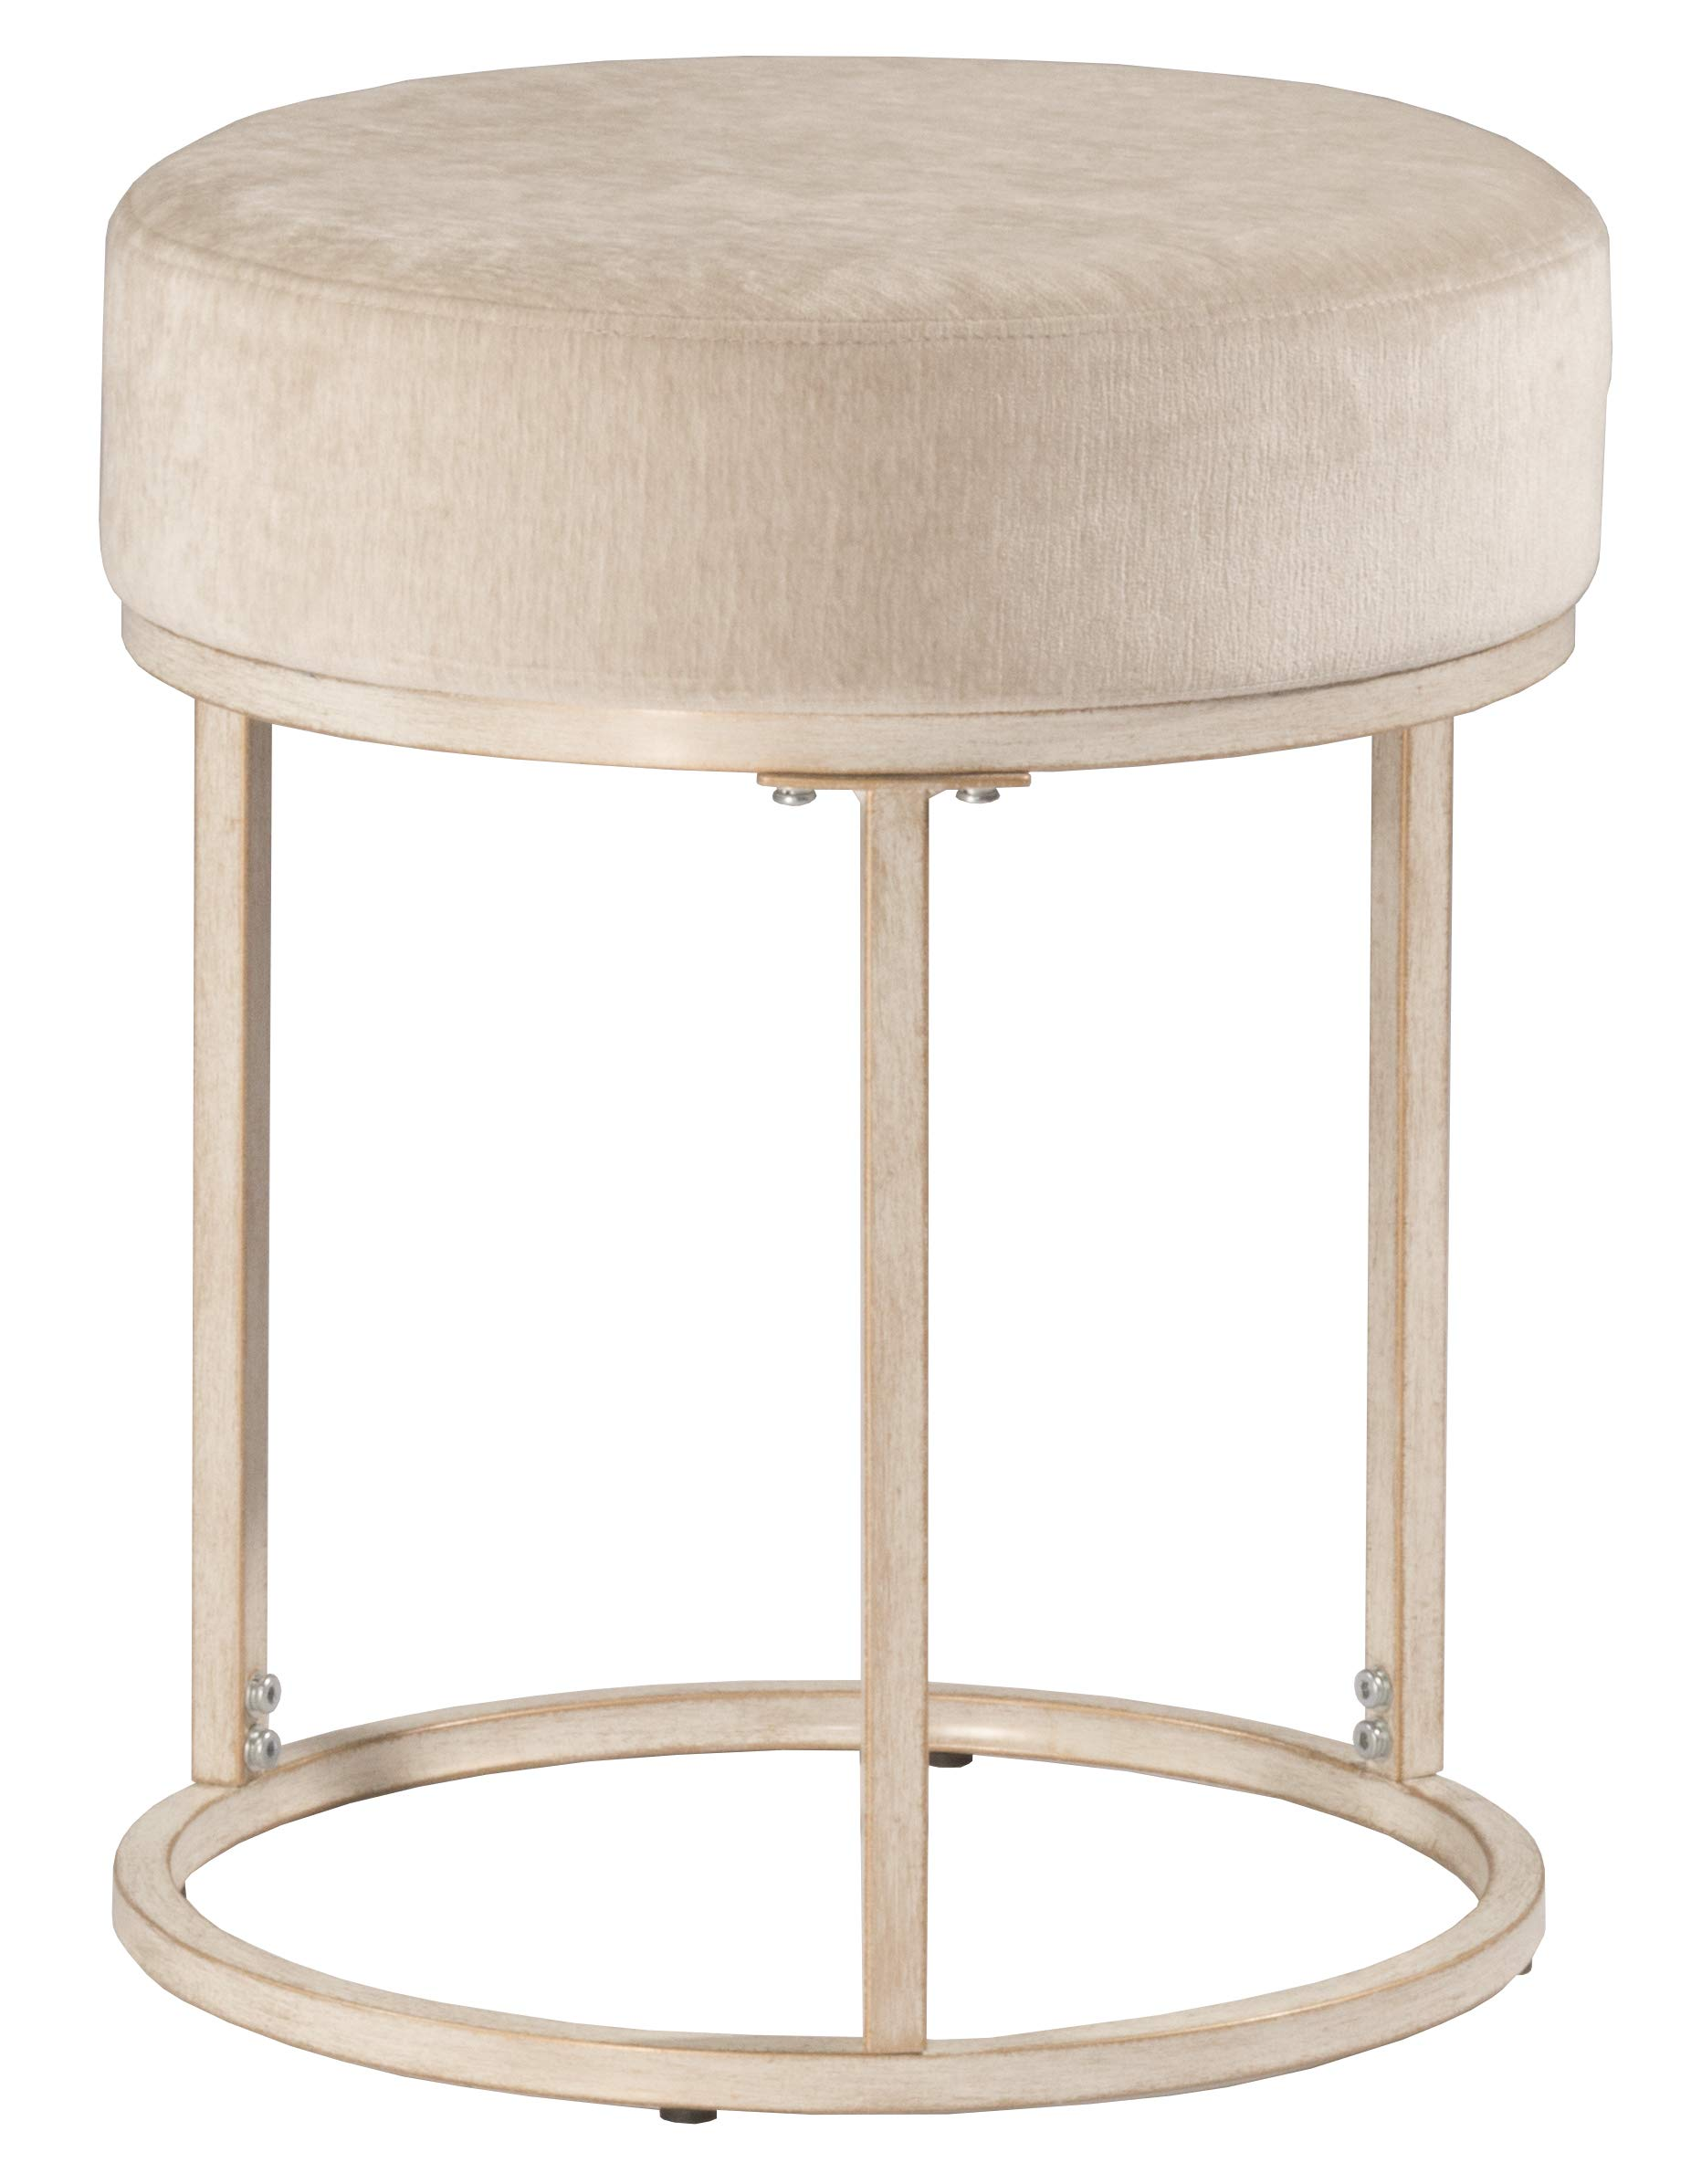 Hillsdale Furniture 51024 Swanson Vanity Stool, White by Hillsdale Furniture